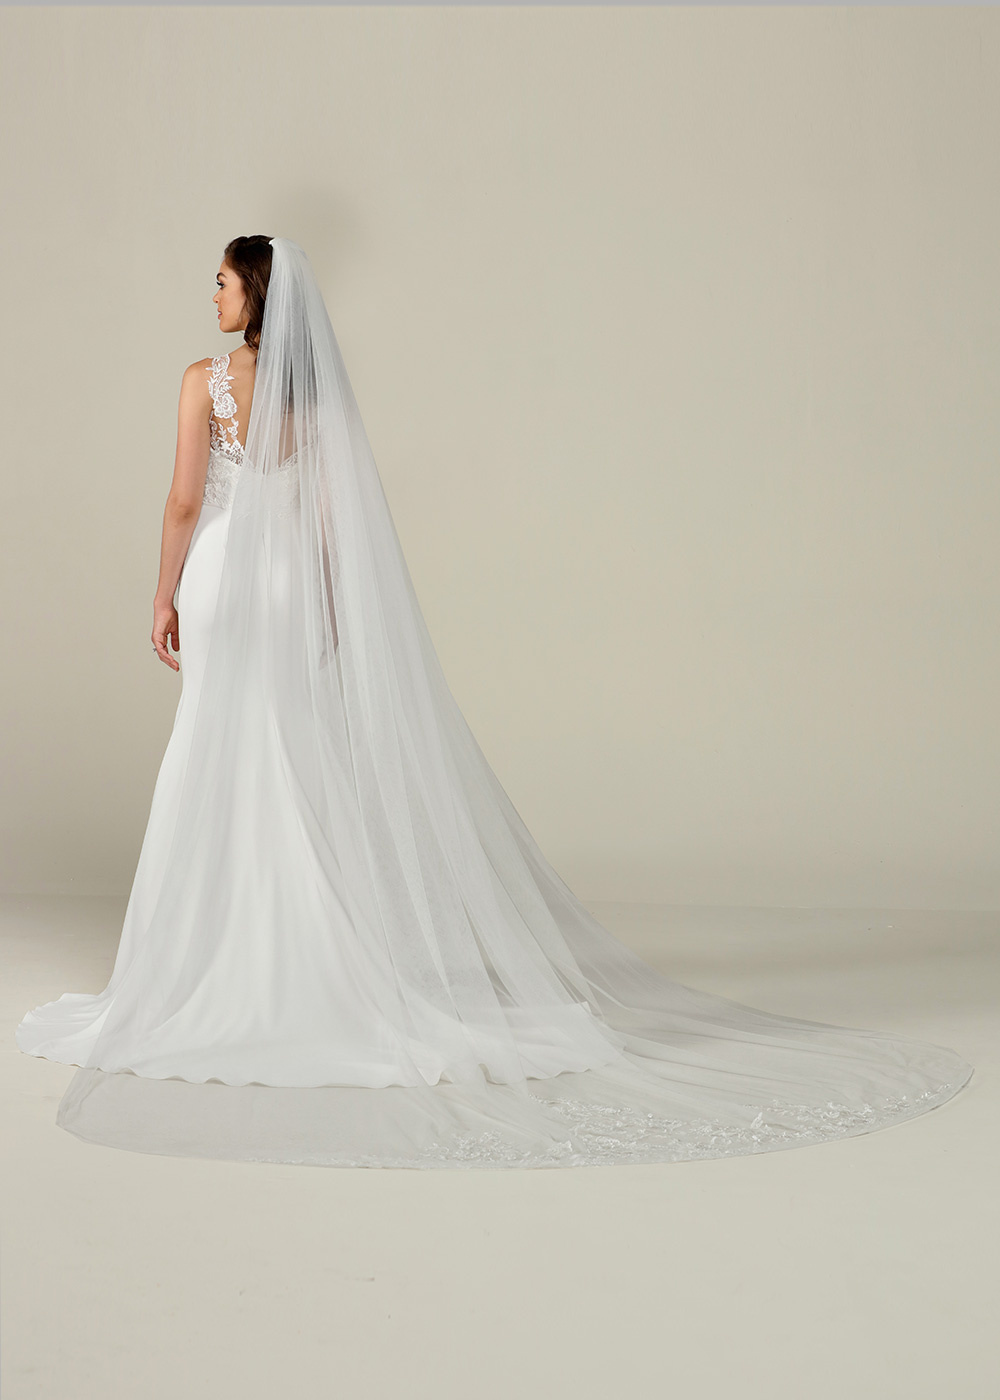 Serenity Veil Cathedral Veils By Ashdon